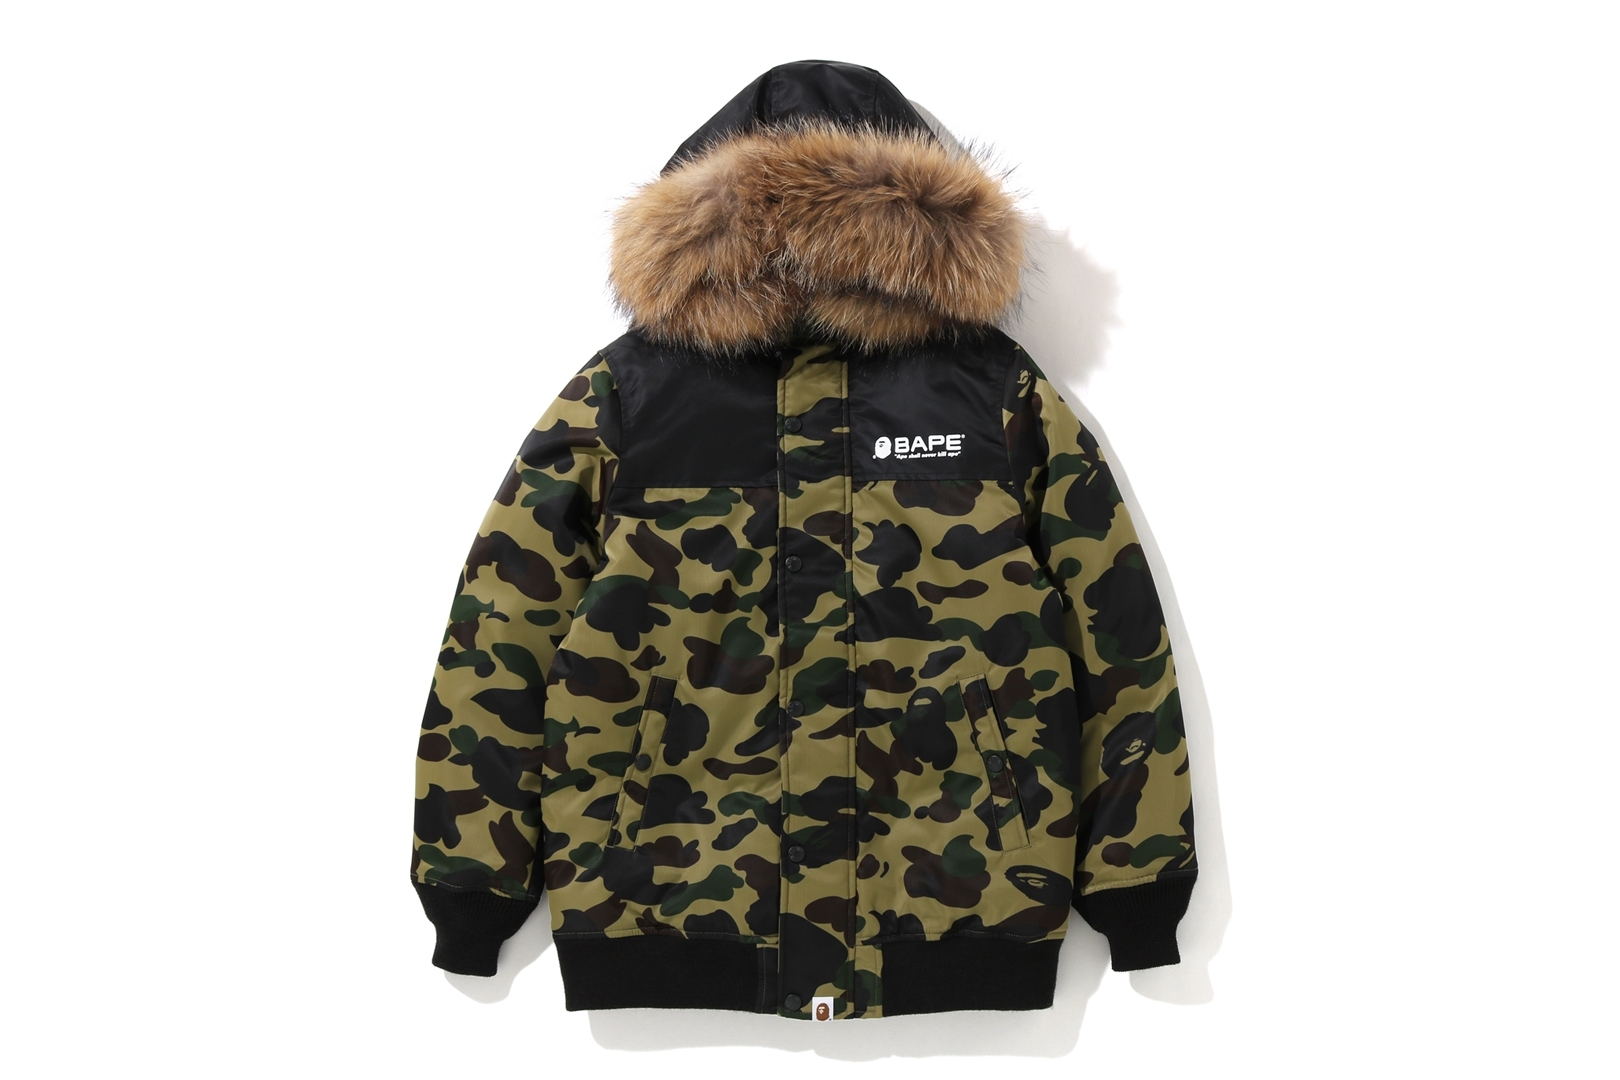 1ST CAMO OVERSIZED HOODIE DOWN JACKET_a0174495_13235304.jpg